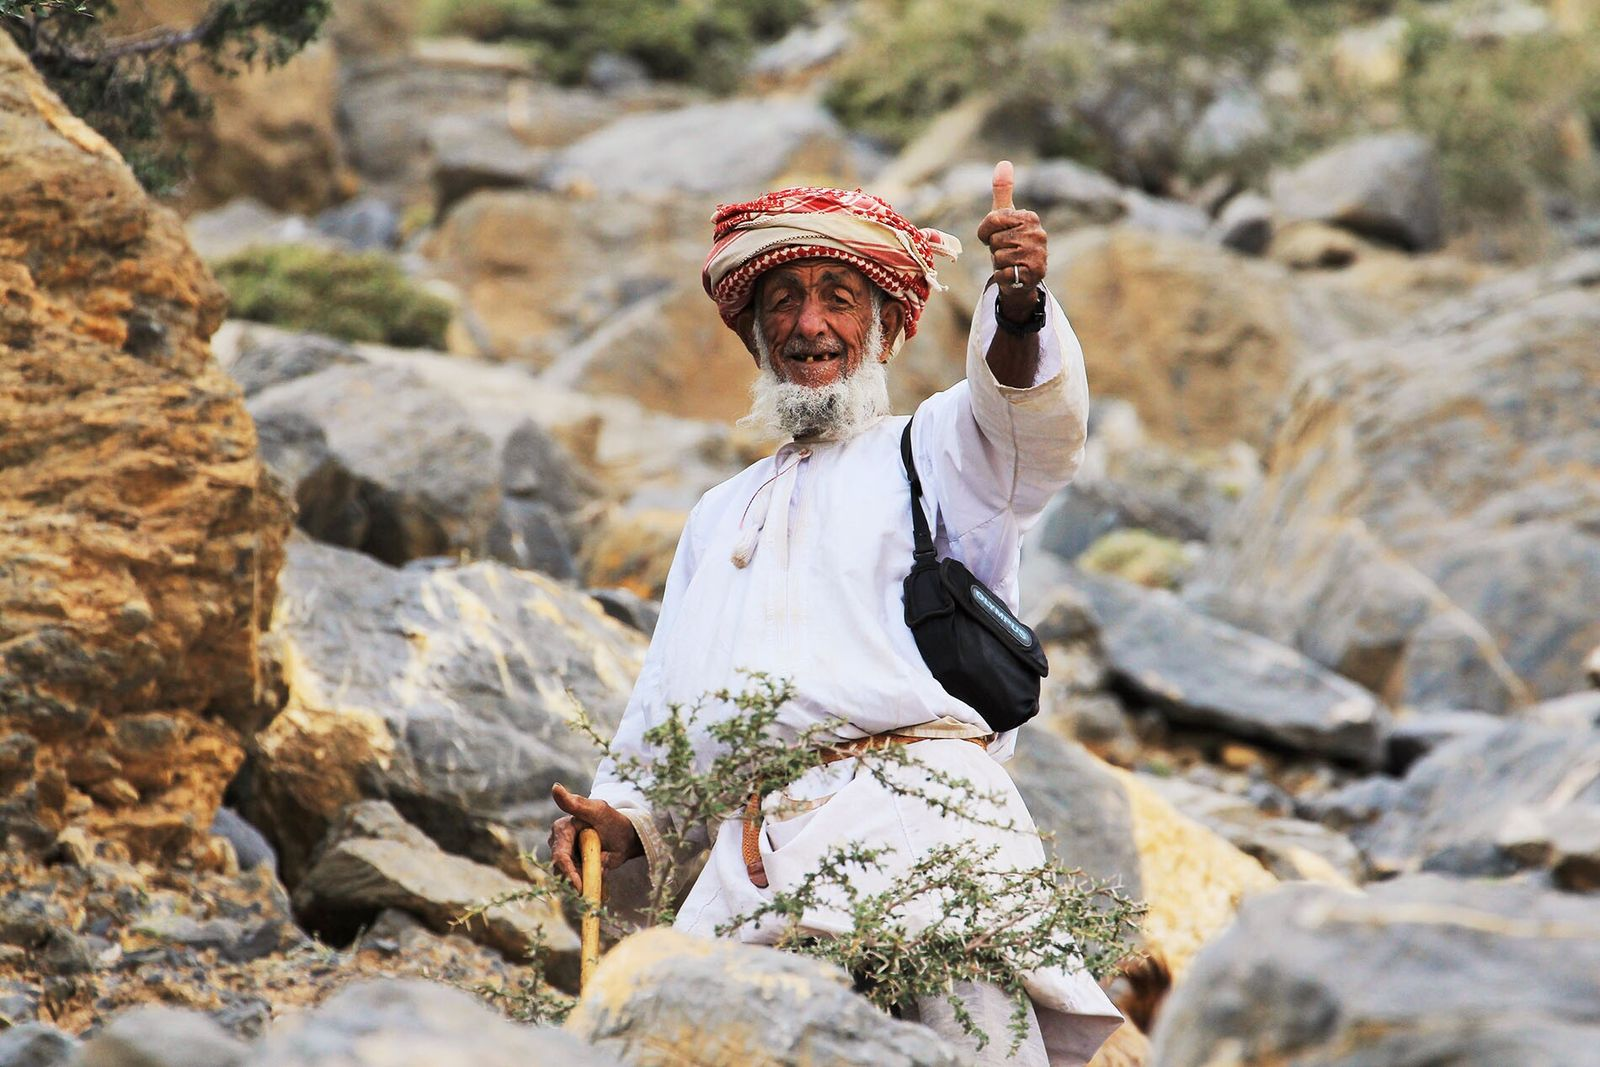 Omanis are known for their calm, respectful natures, and for their positive outlook on life.